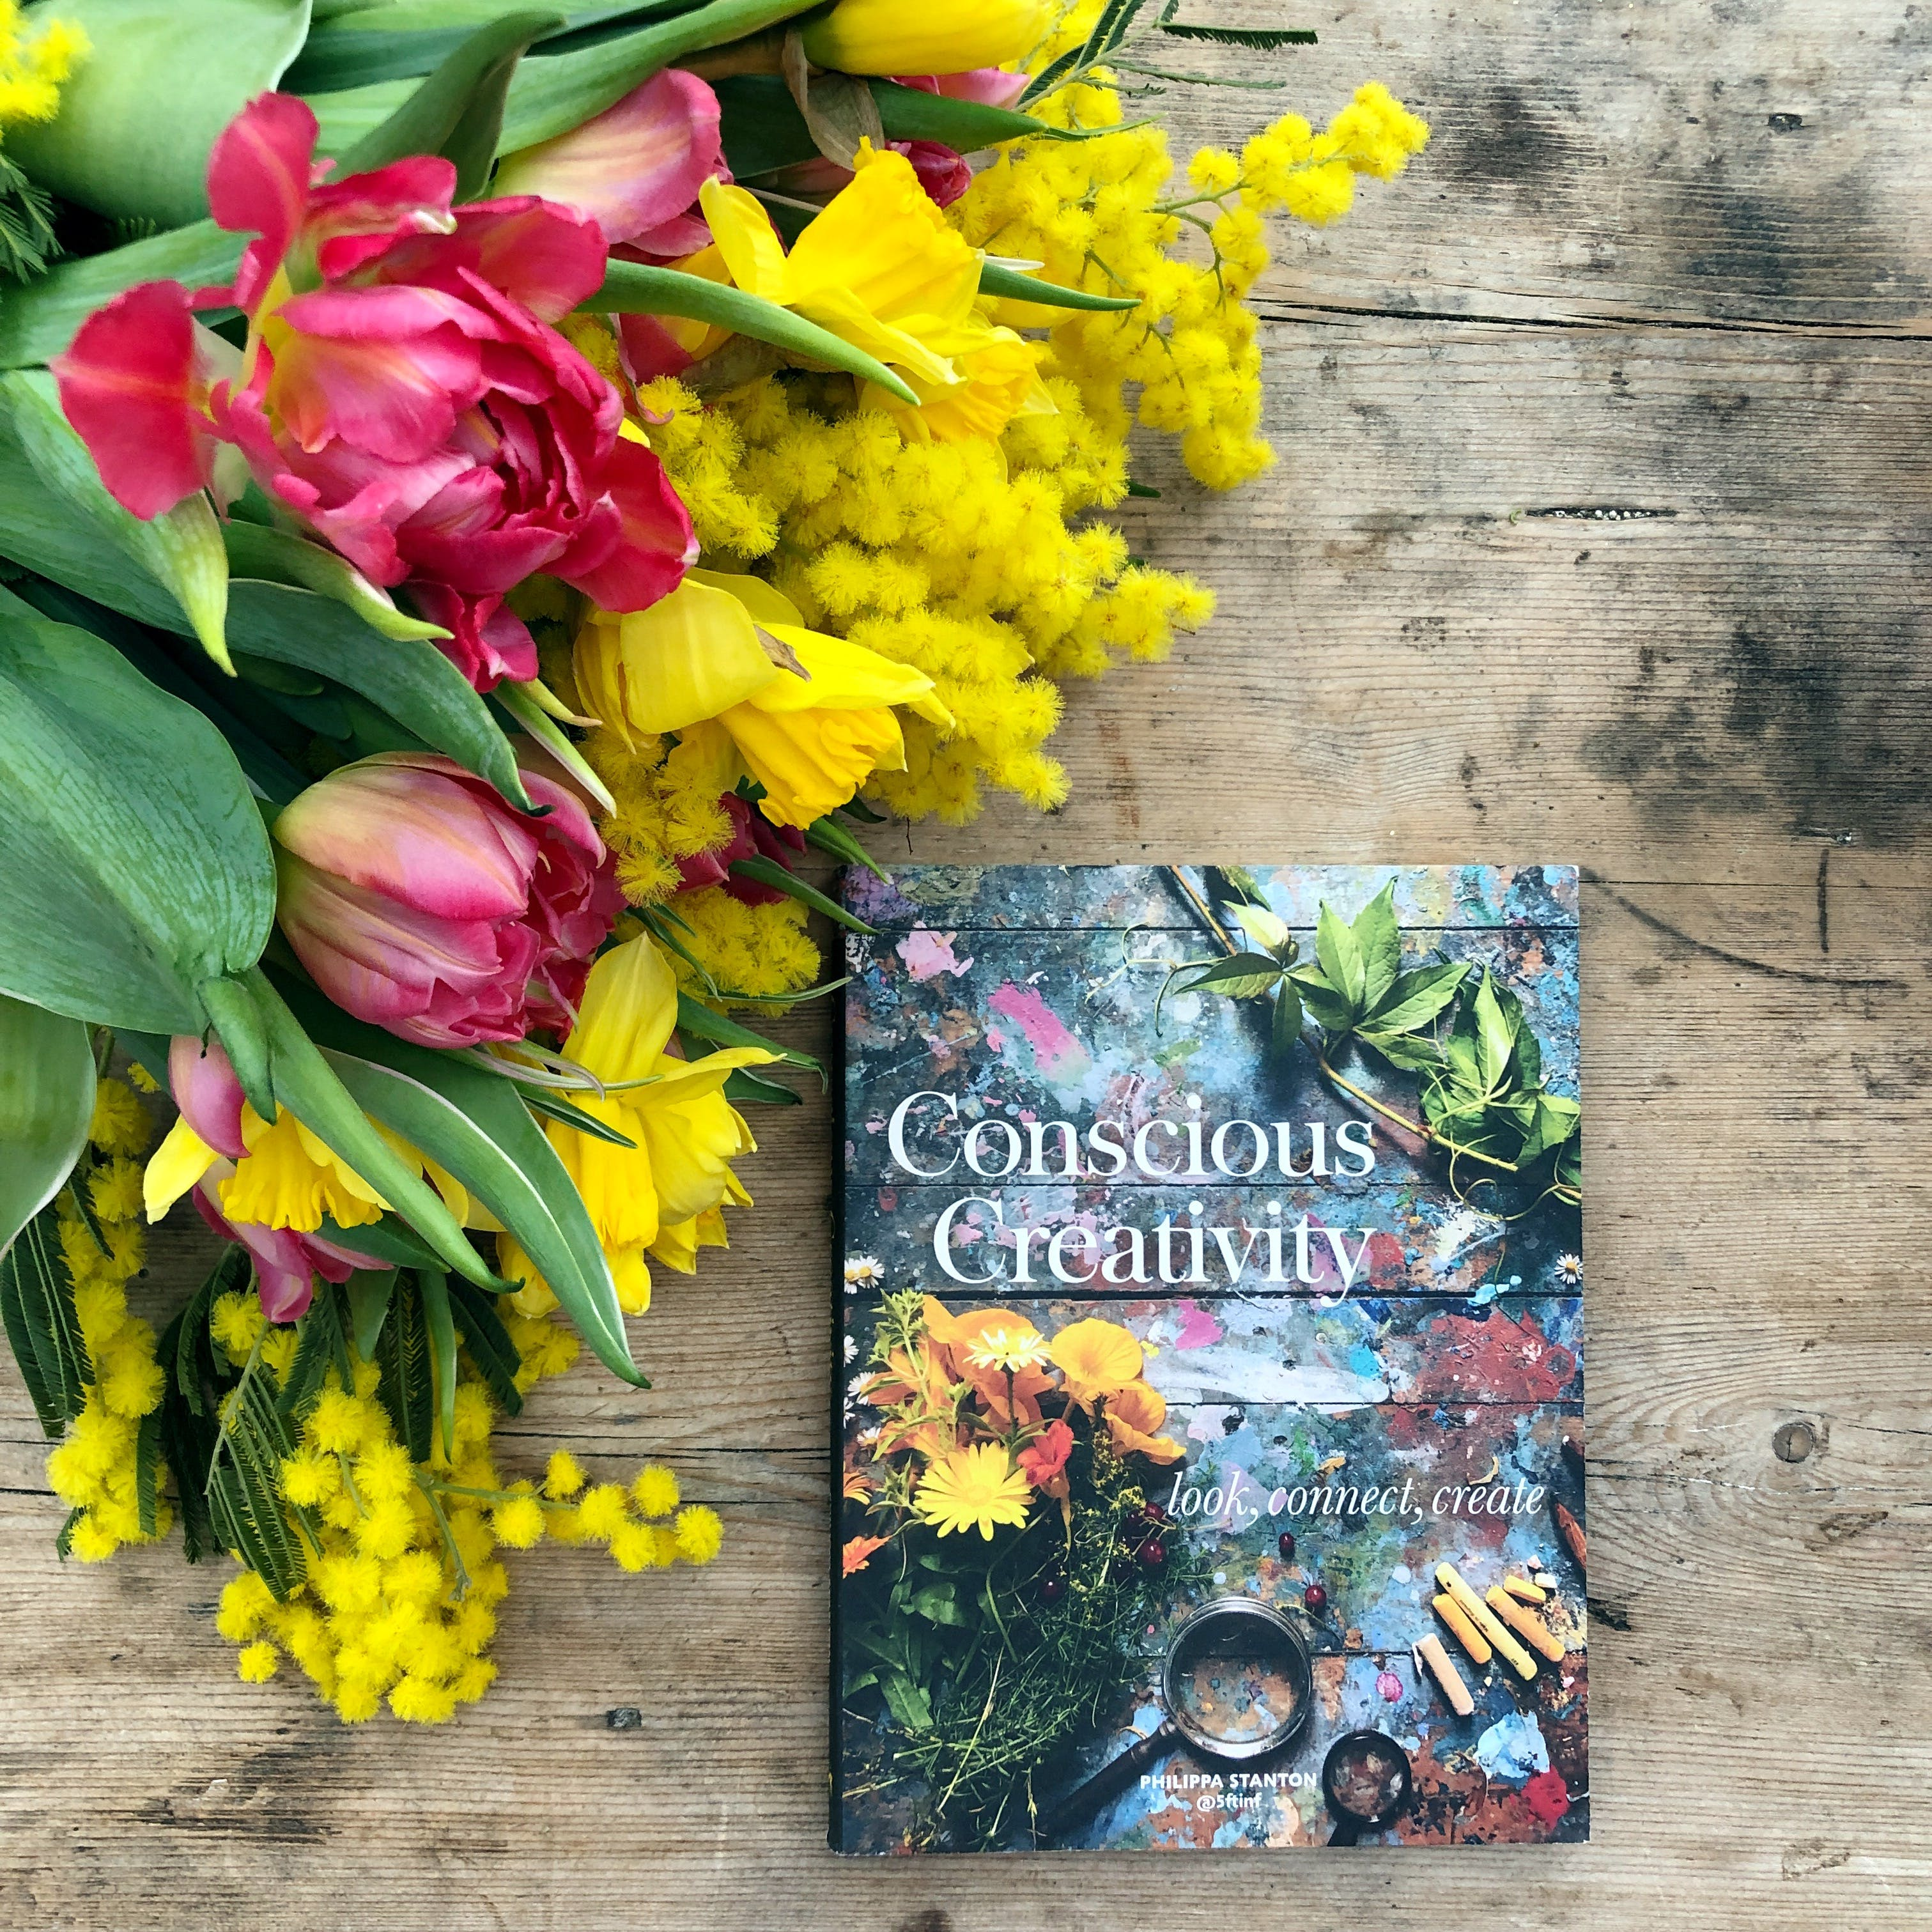 Conscious Creativity by Philippa Stanton is a complete feast for the senses and your creativity.